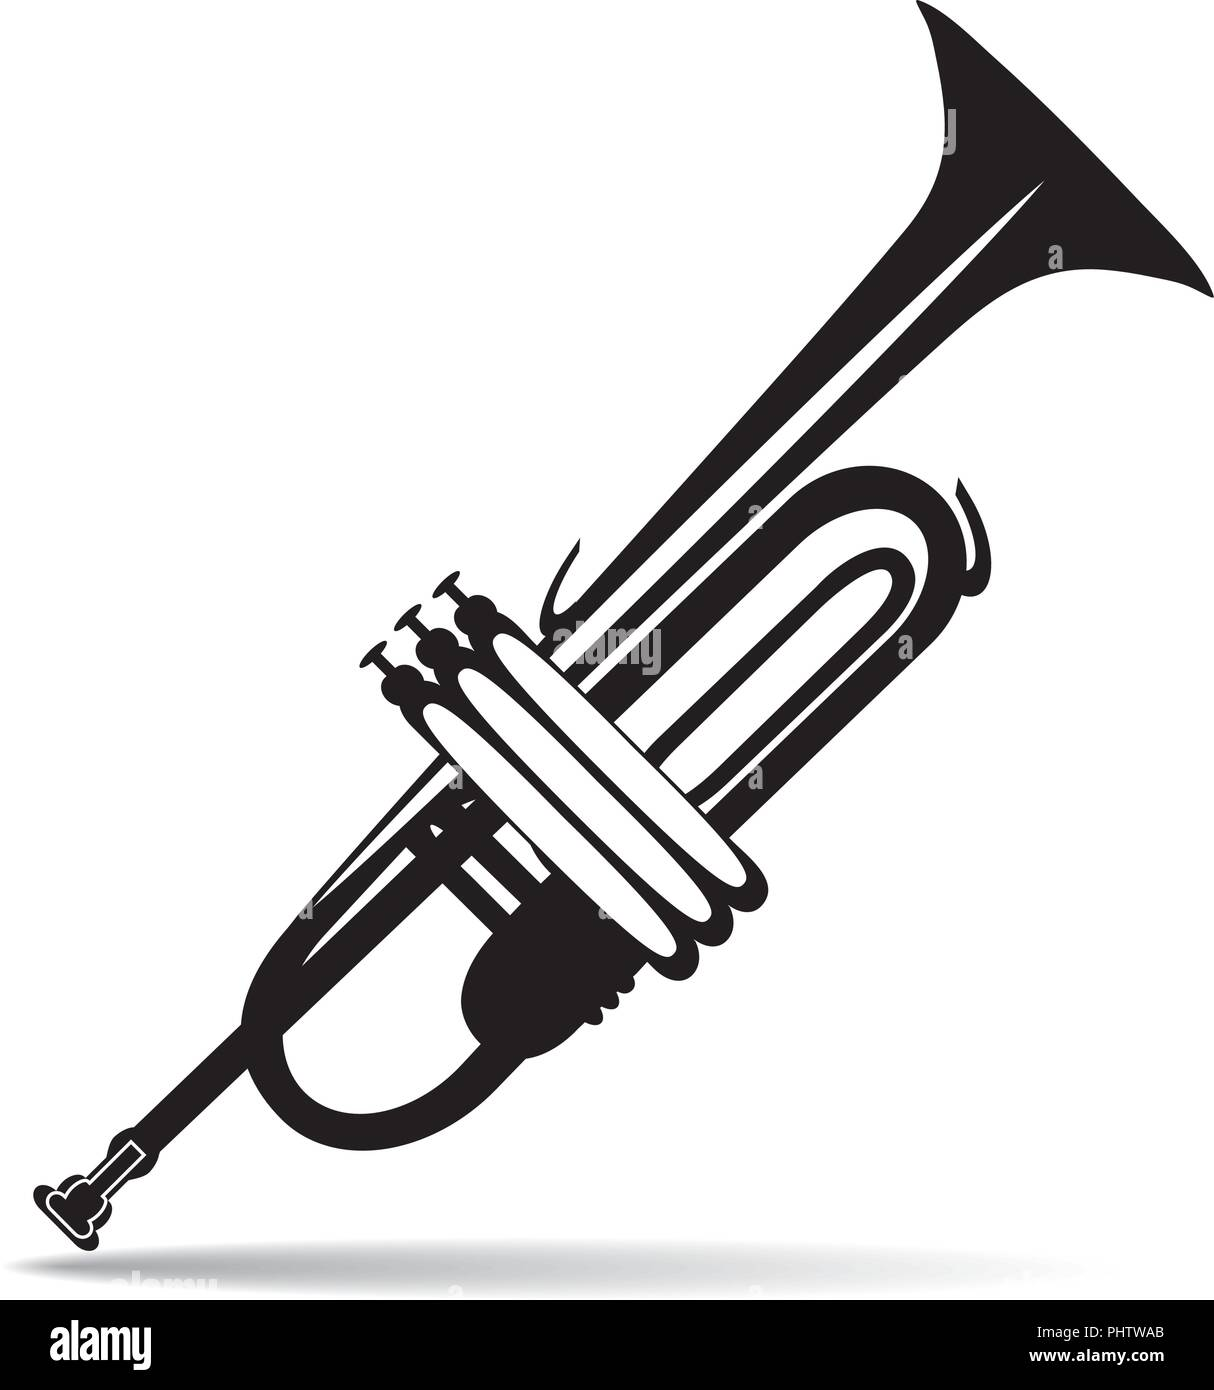 Vector illustration of black and white trumpet - Stock Image